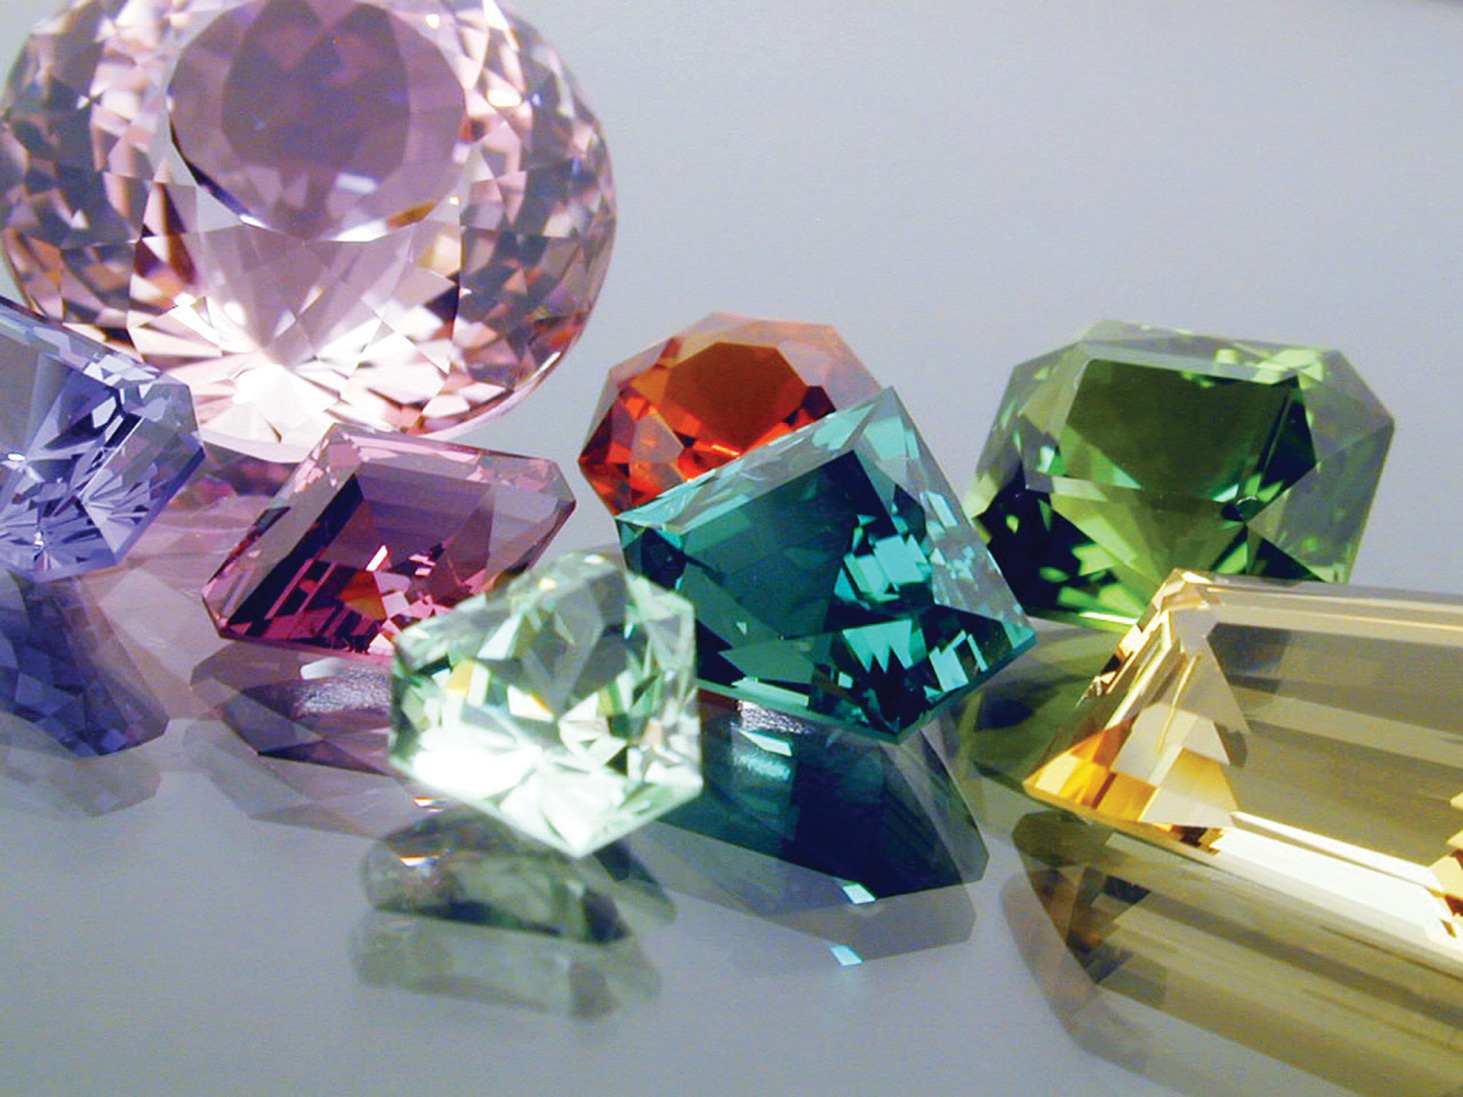 Thank you, Dan Stair Custom Gemstones, for use of this photo and information.